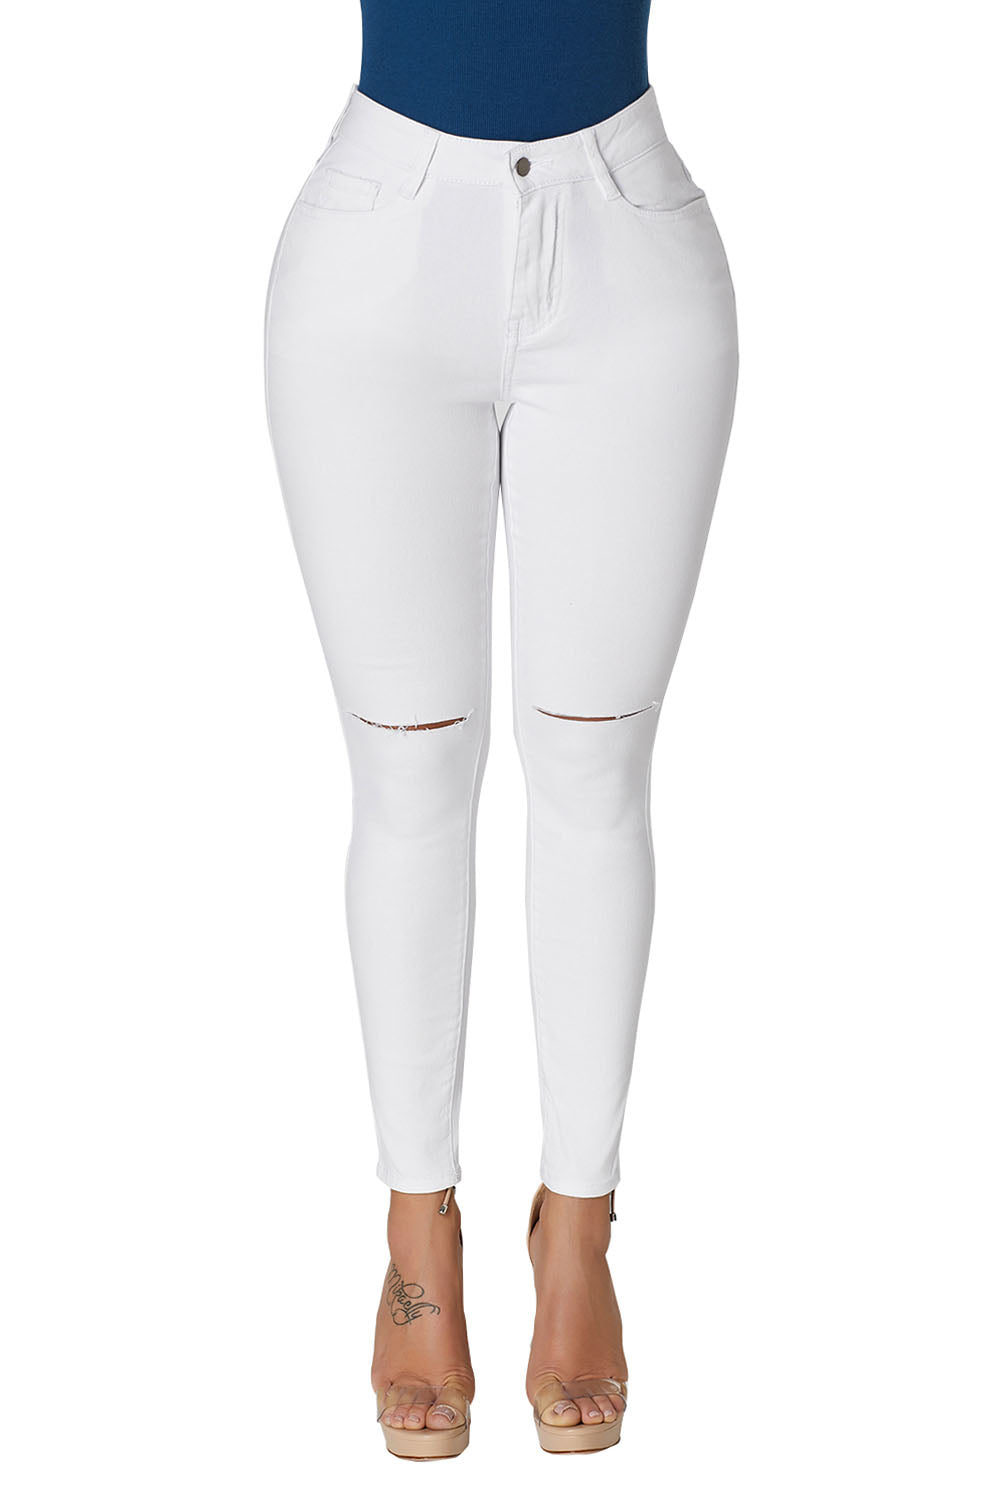 White Trendy Slit Knee Denim Pants